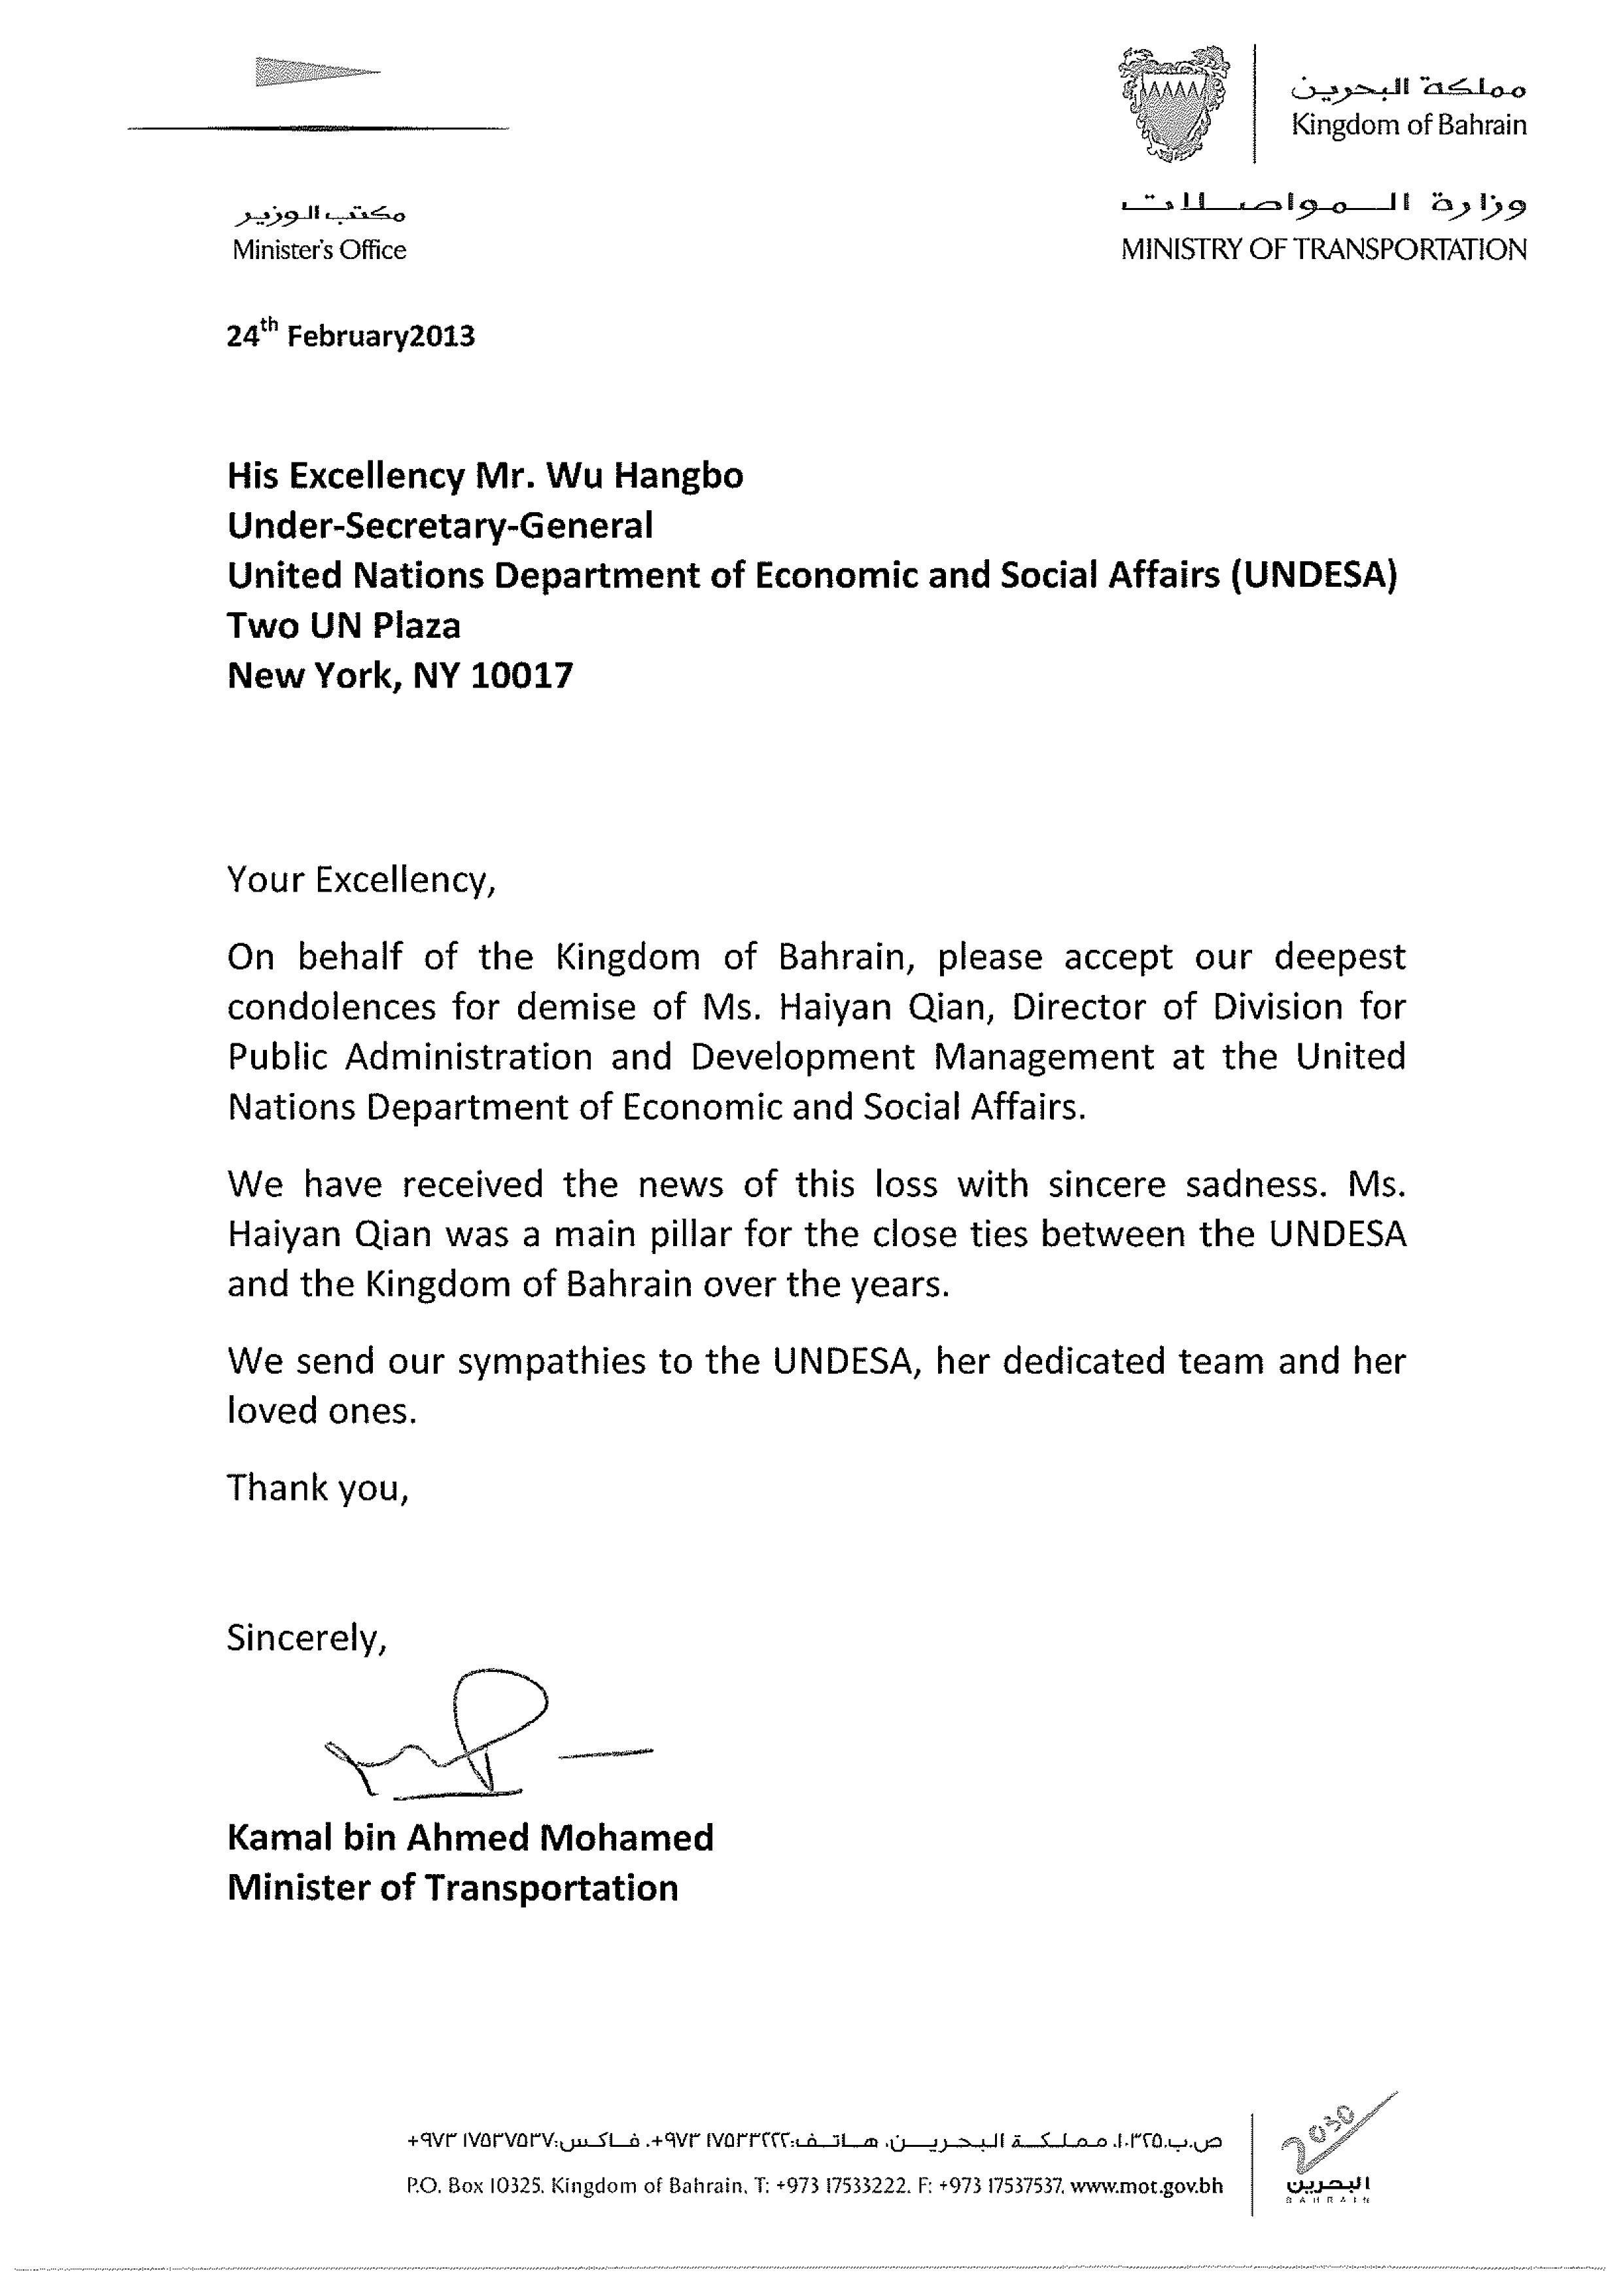 Formal Cover Letter 1000 images about condolence letters on – Formal Condolences Letter